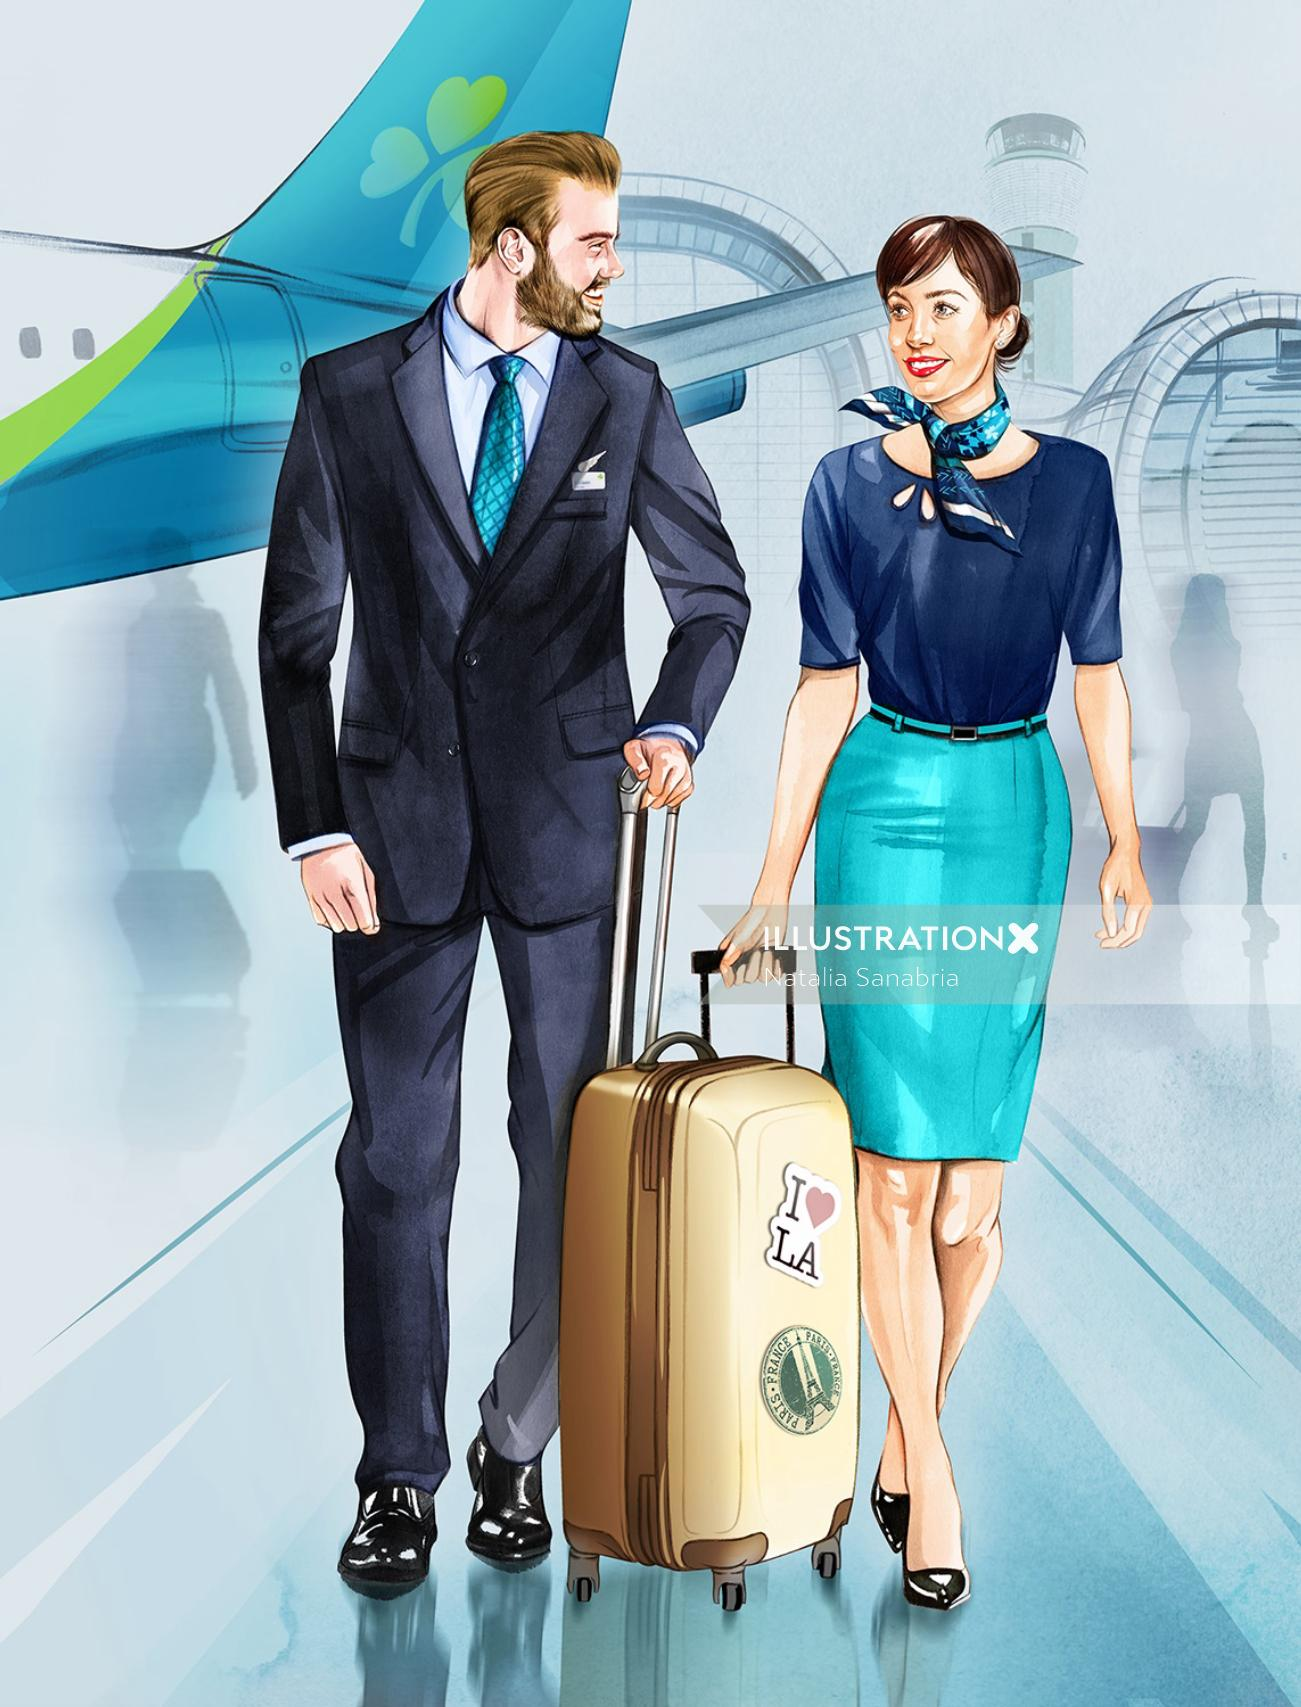 Air Hostess graphic design